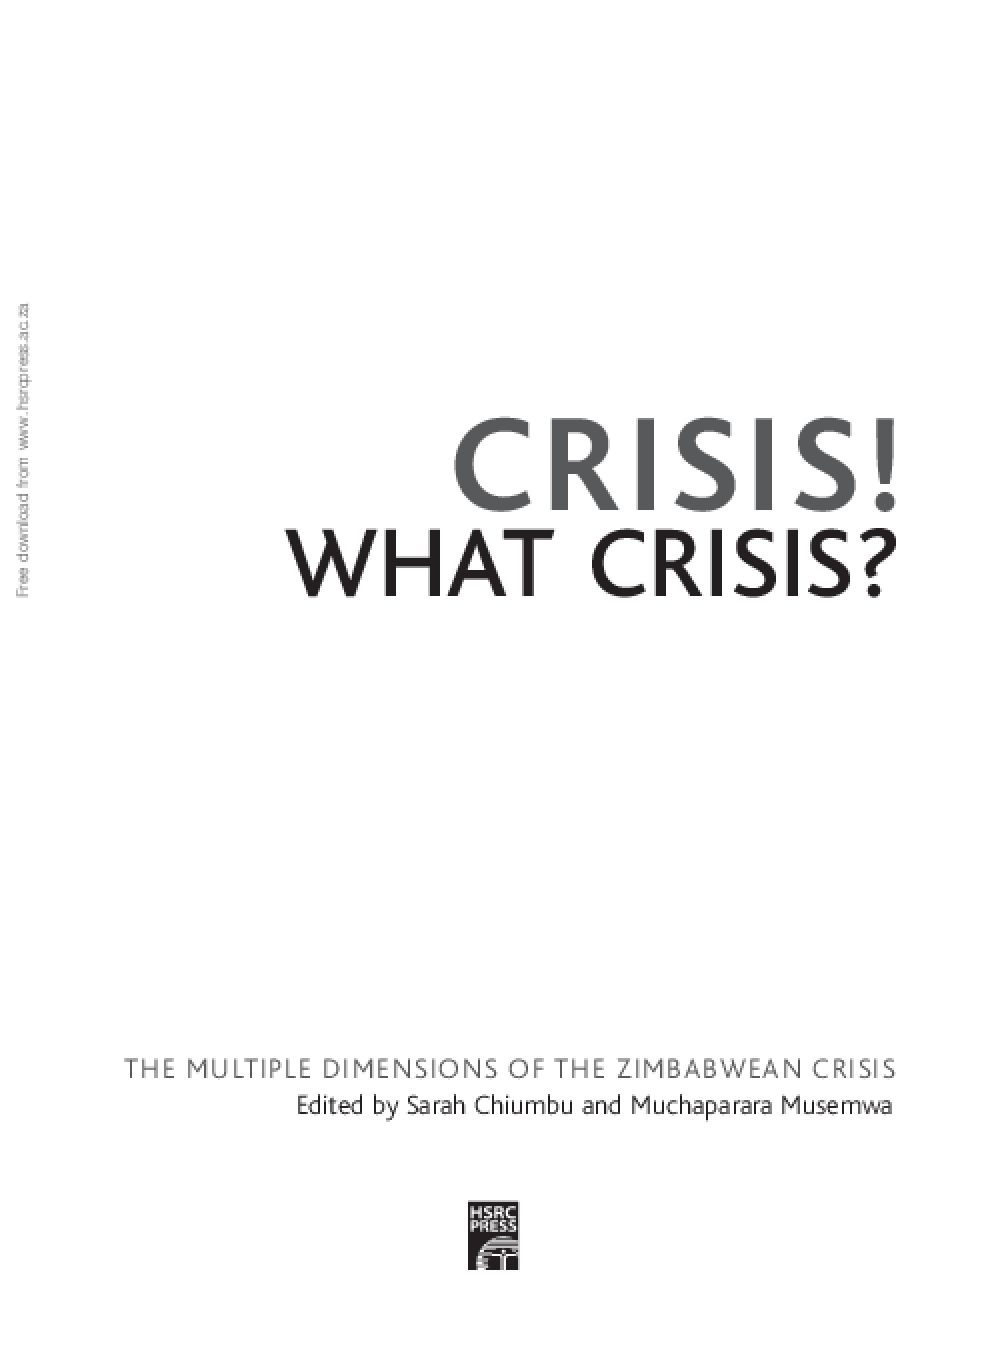 Crisis! What Crisis?: The Multiple Dimensions of the Zimbabwean Crisis